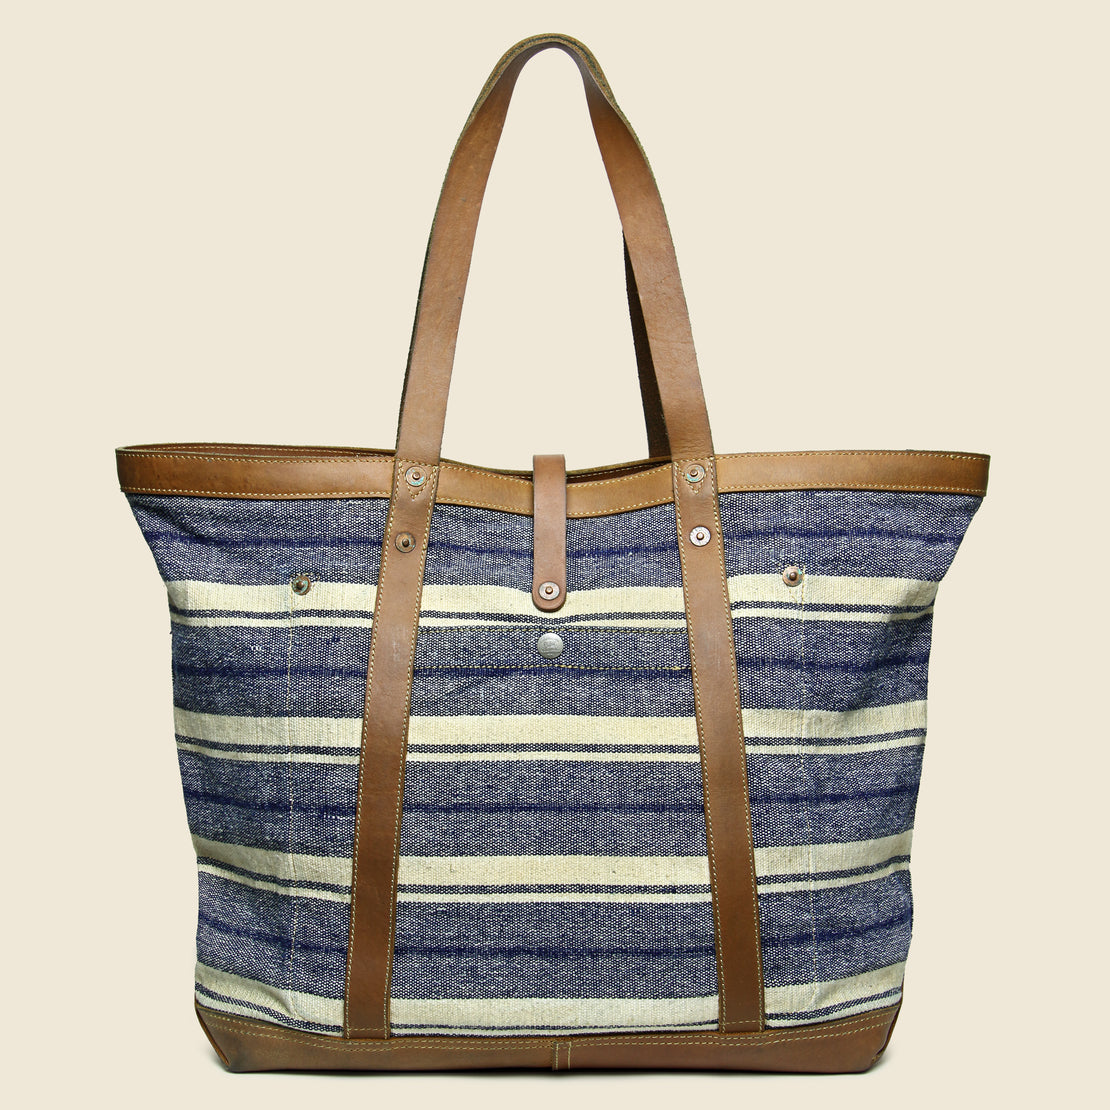 Murphy Canvas Tote - Indigo/Tan